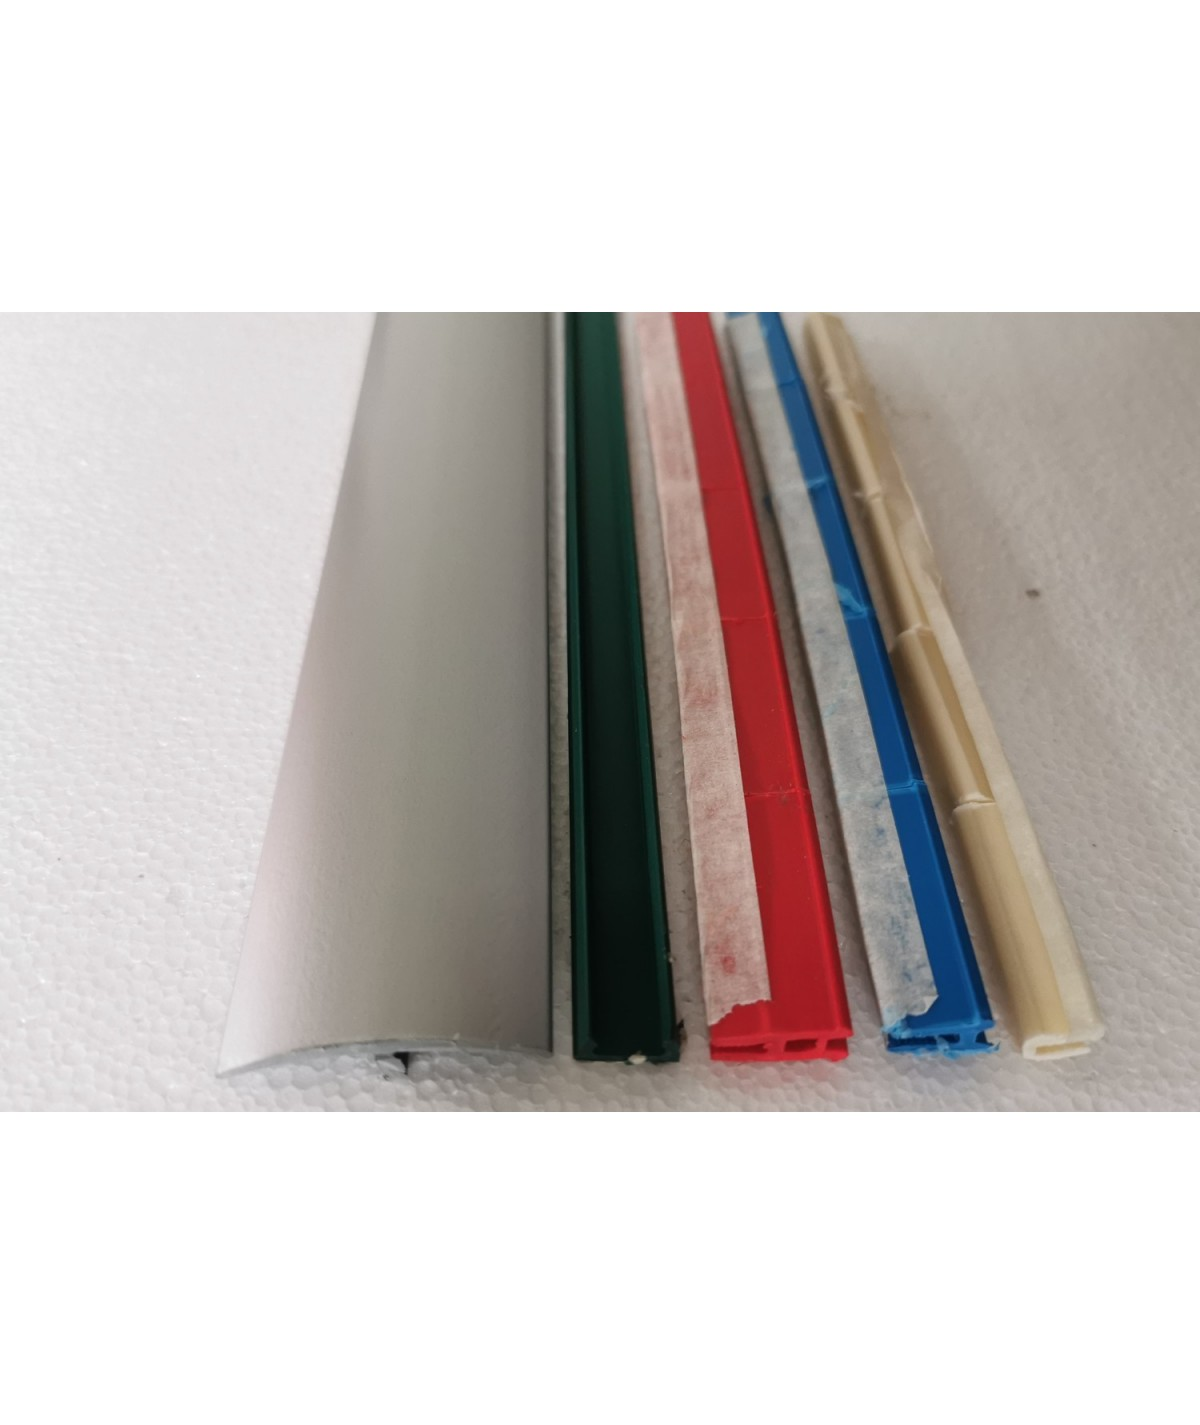 Silver Effect Laminate Transition Strip 38mm x 0.90mtr Multi-Height and Pivot